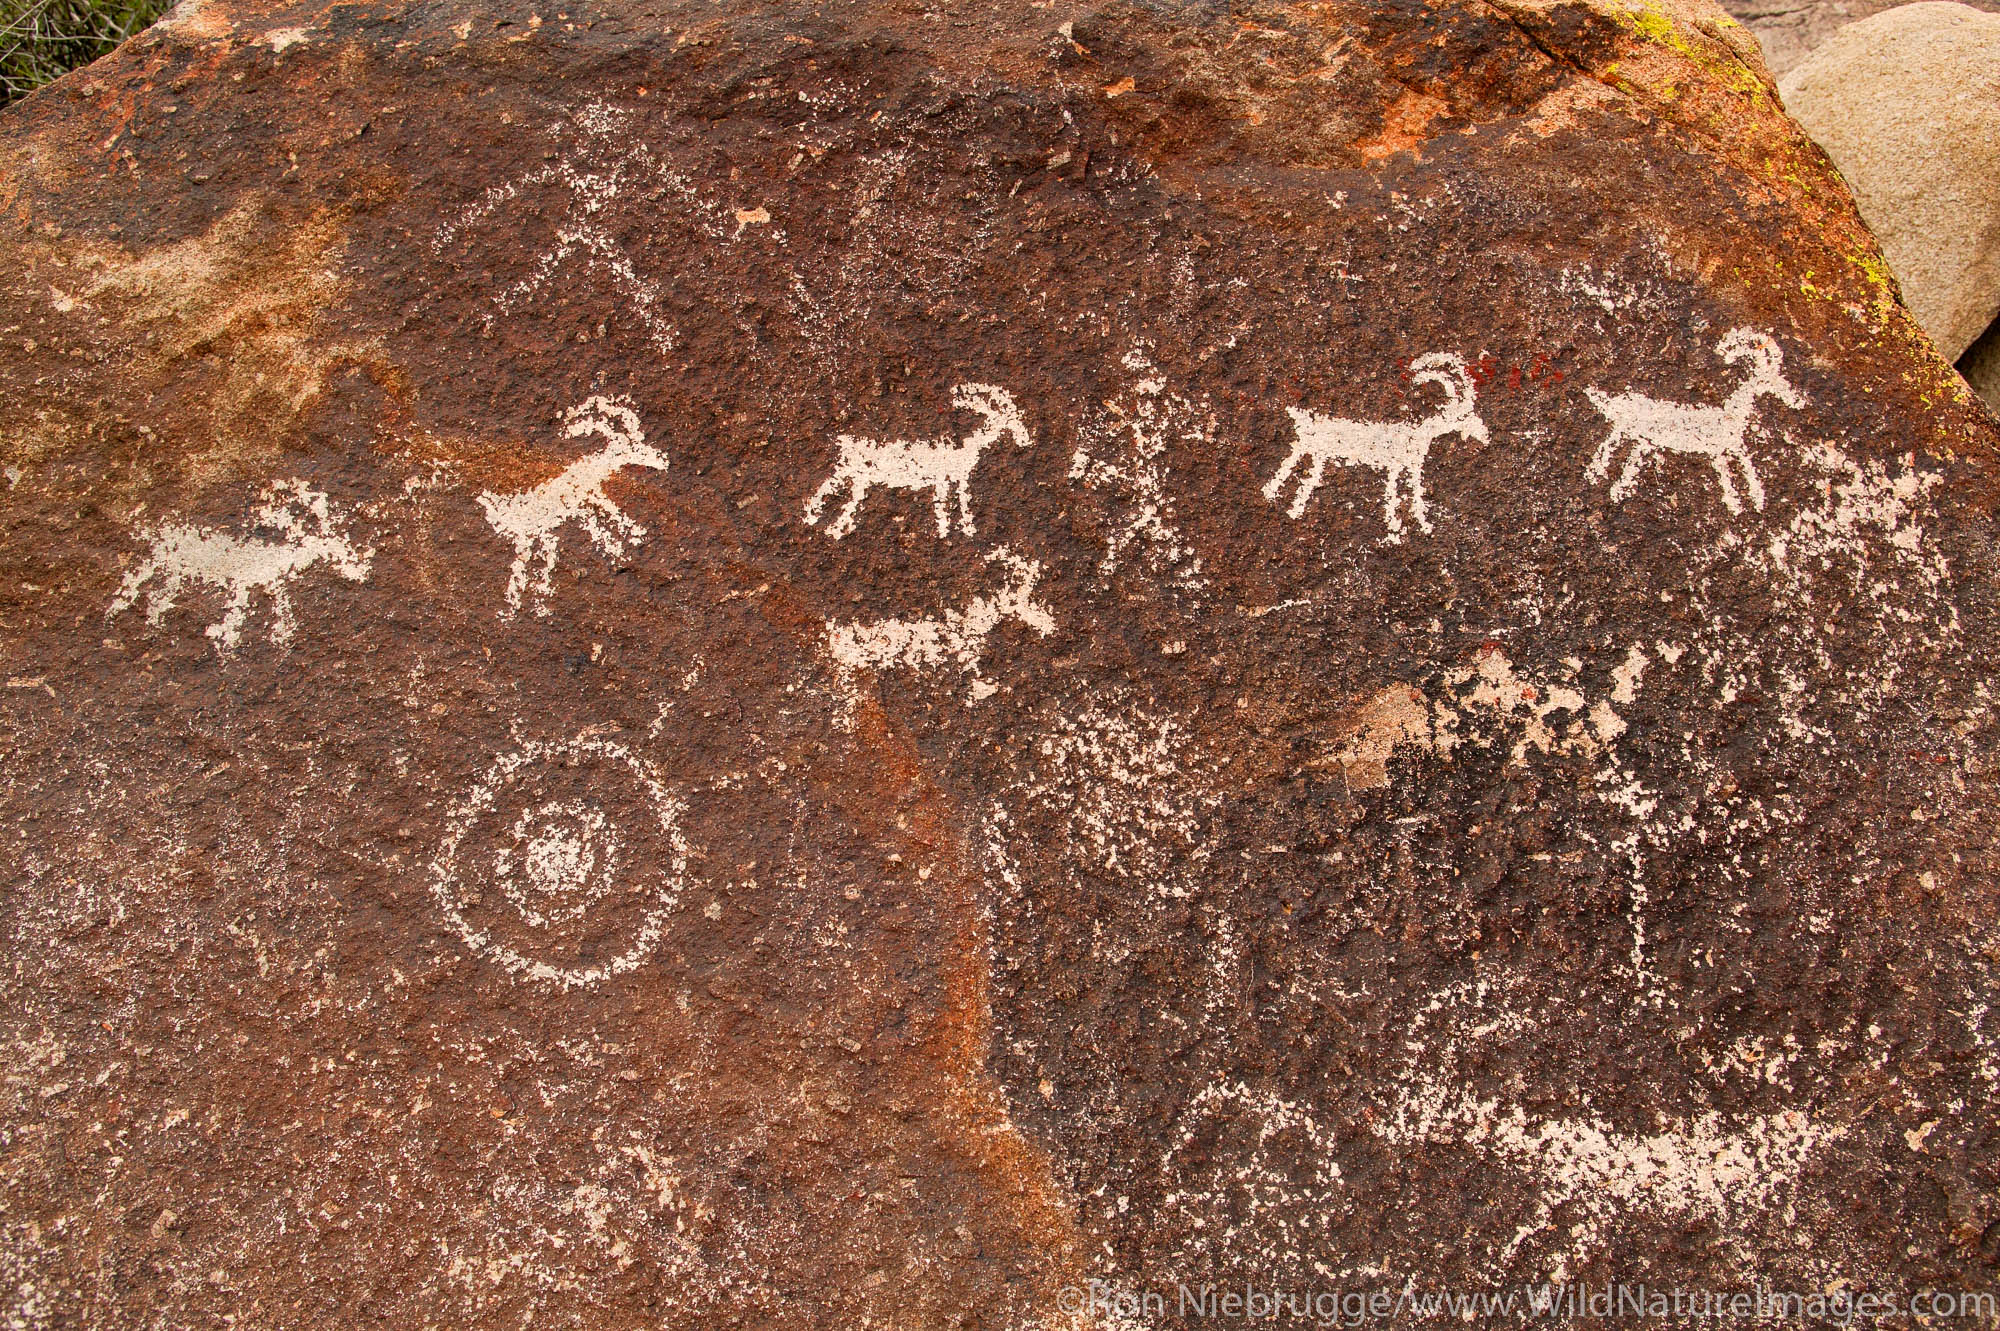 Petroglyphs in Grapevine Canyon of the Newberry Mountains, along Christmas Tree Pass Road, Lake Mead Recreation Area, near Laughlin...